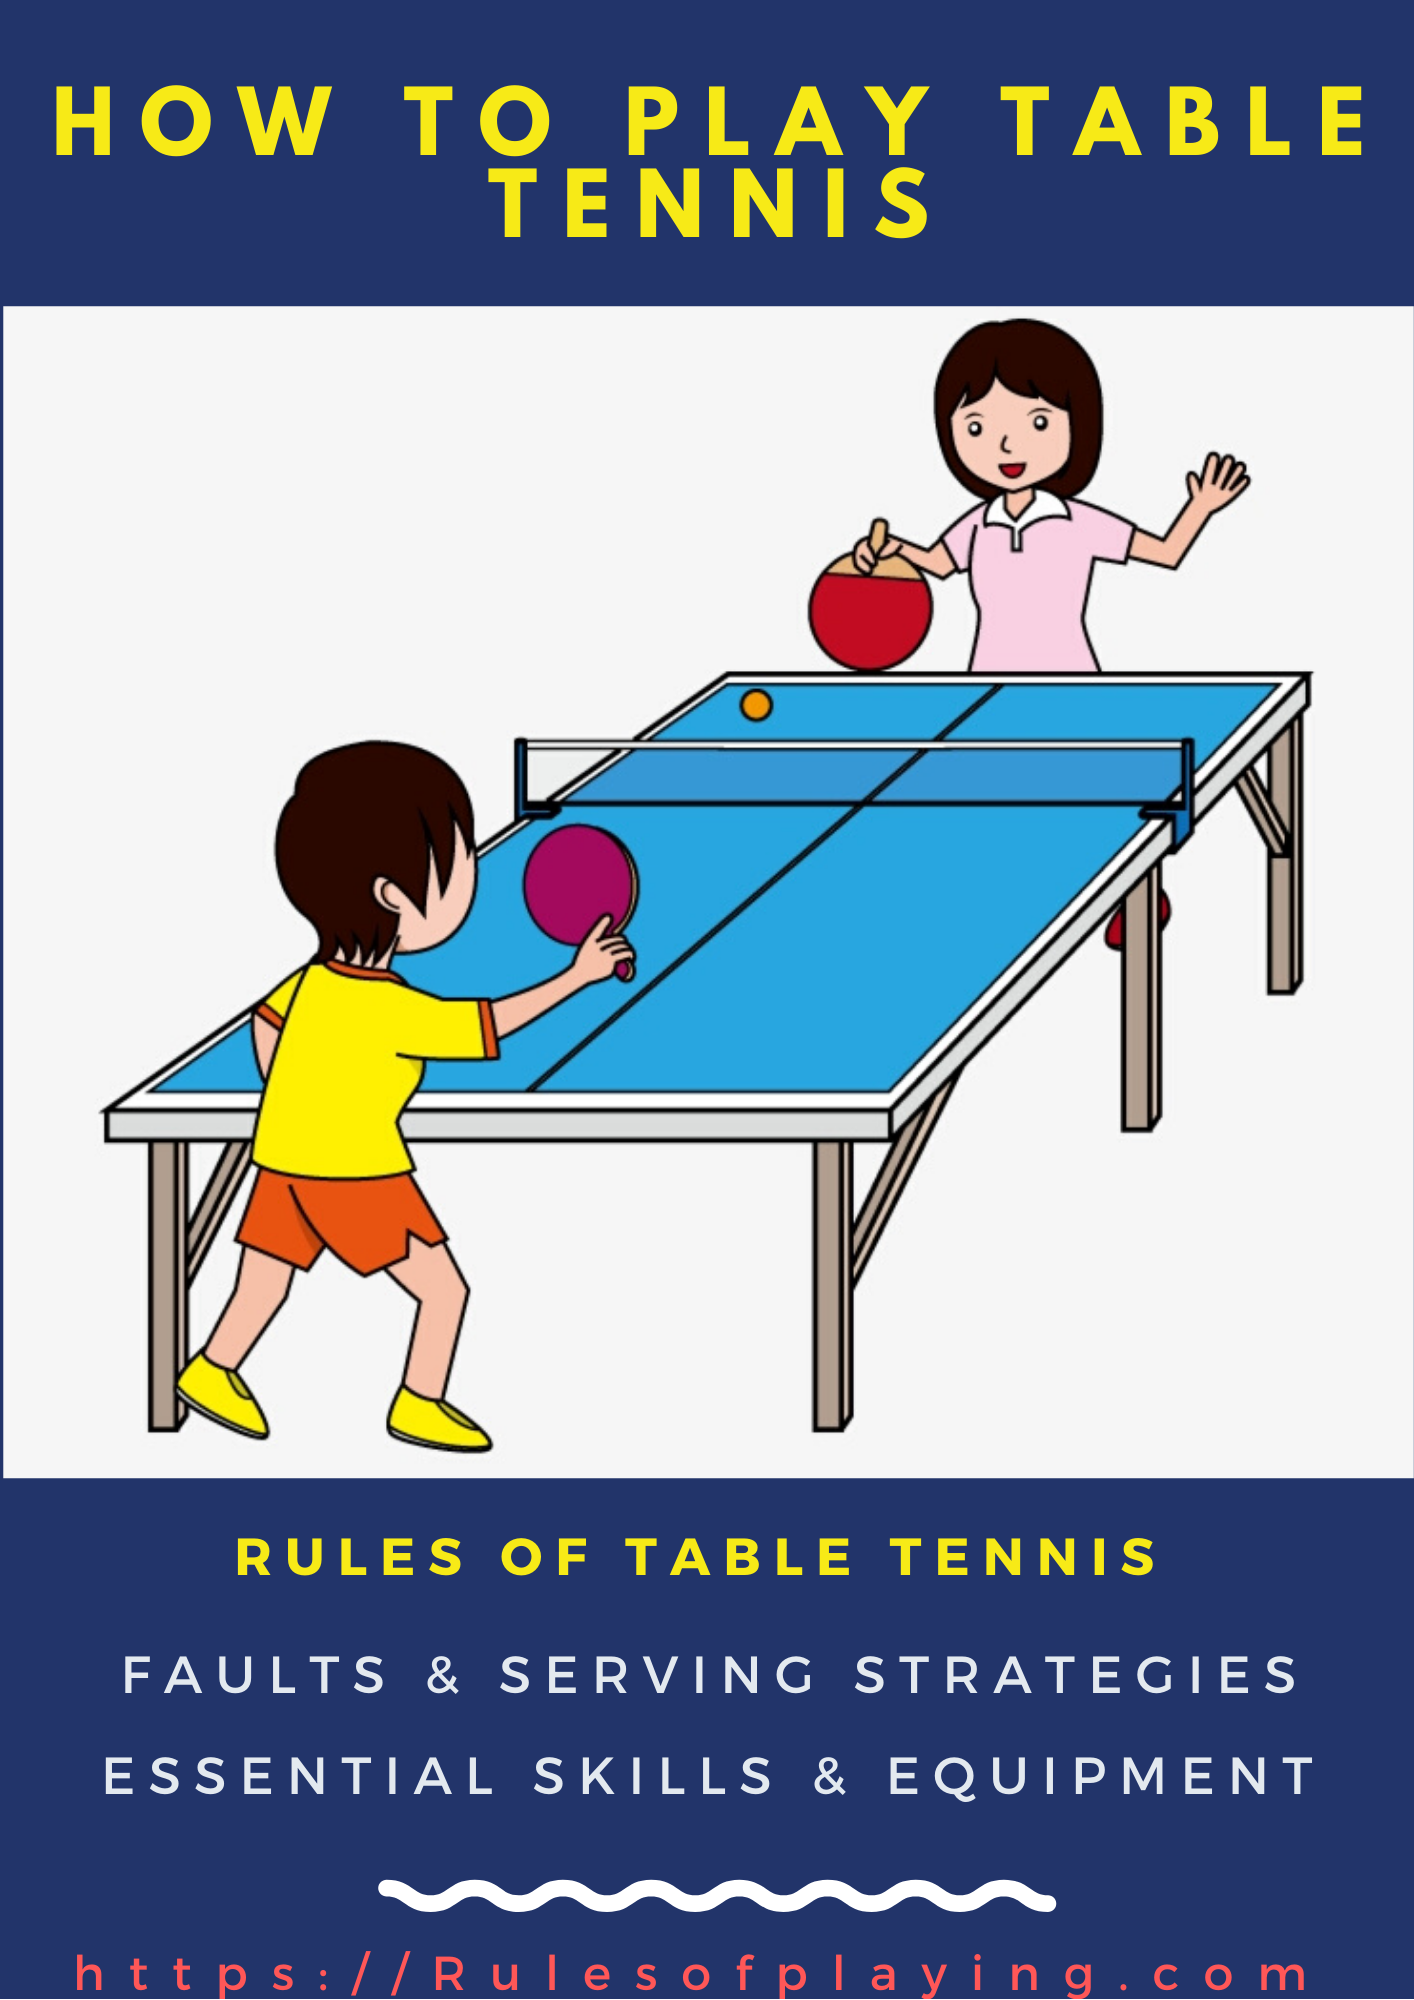 Table Tennis (Ping Pong) Rules & Regulation Guide